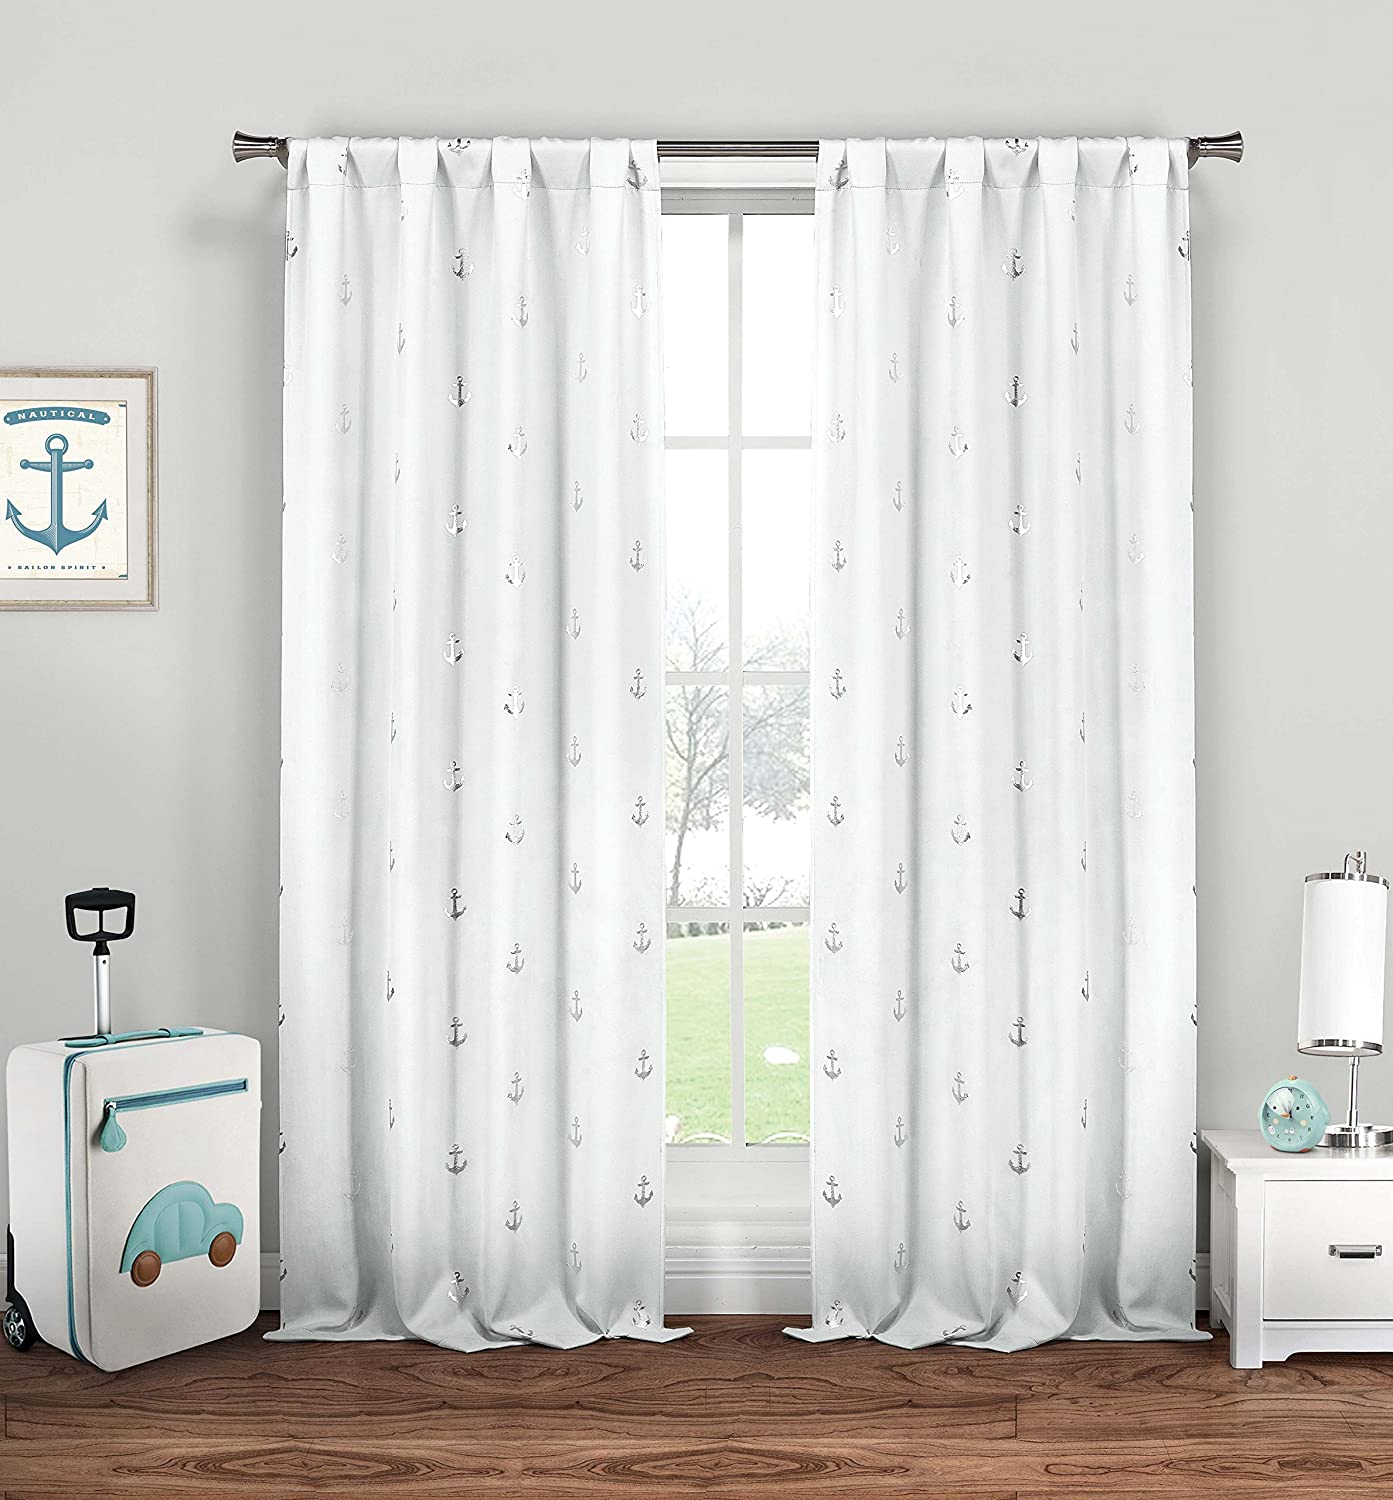 Lala + Bash Ahoy Nautical Blackout Darkening Window Curtain 2 Panel, 37 x 84, White Duck River Textile Premium Quality